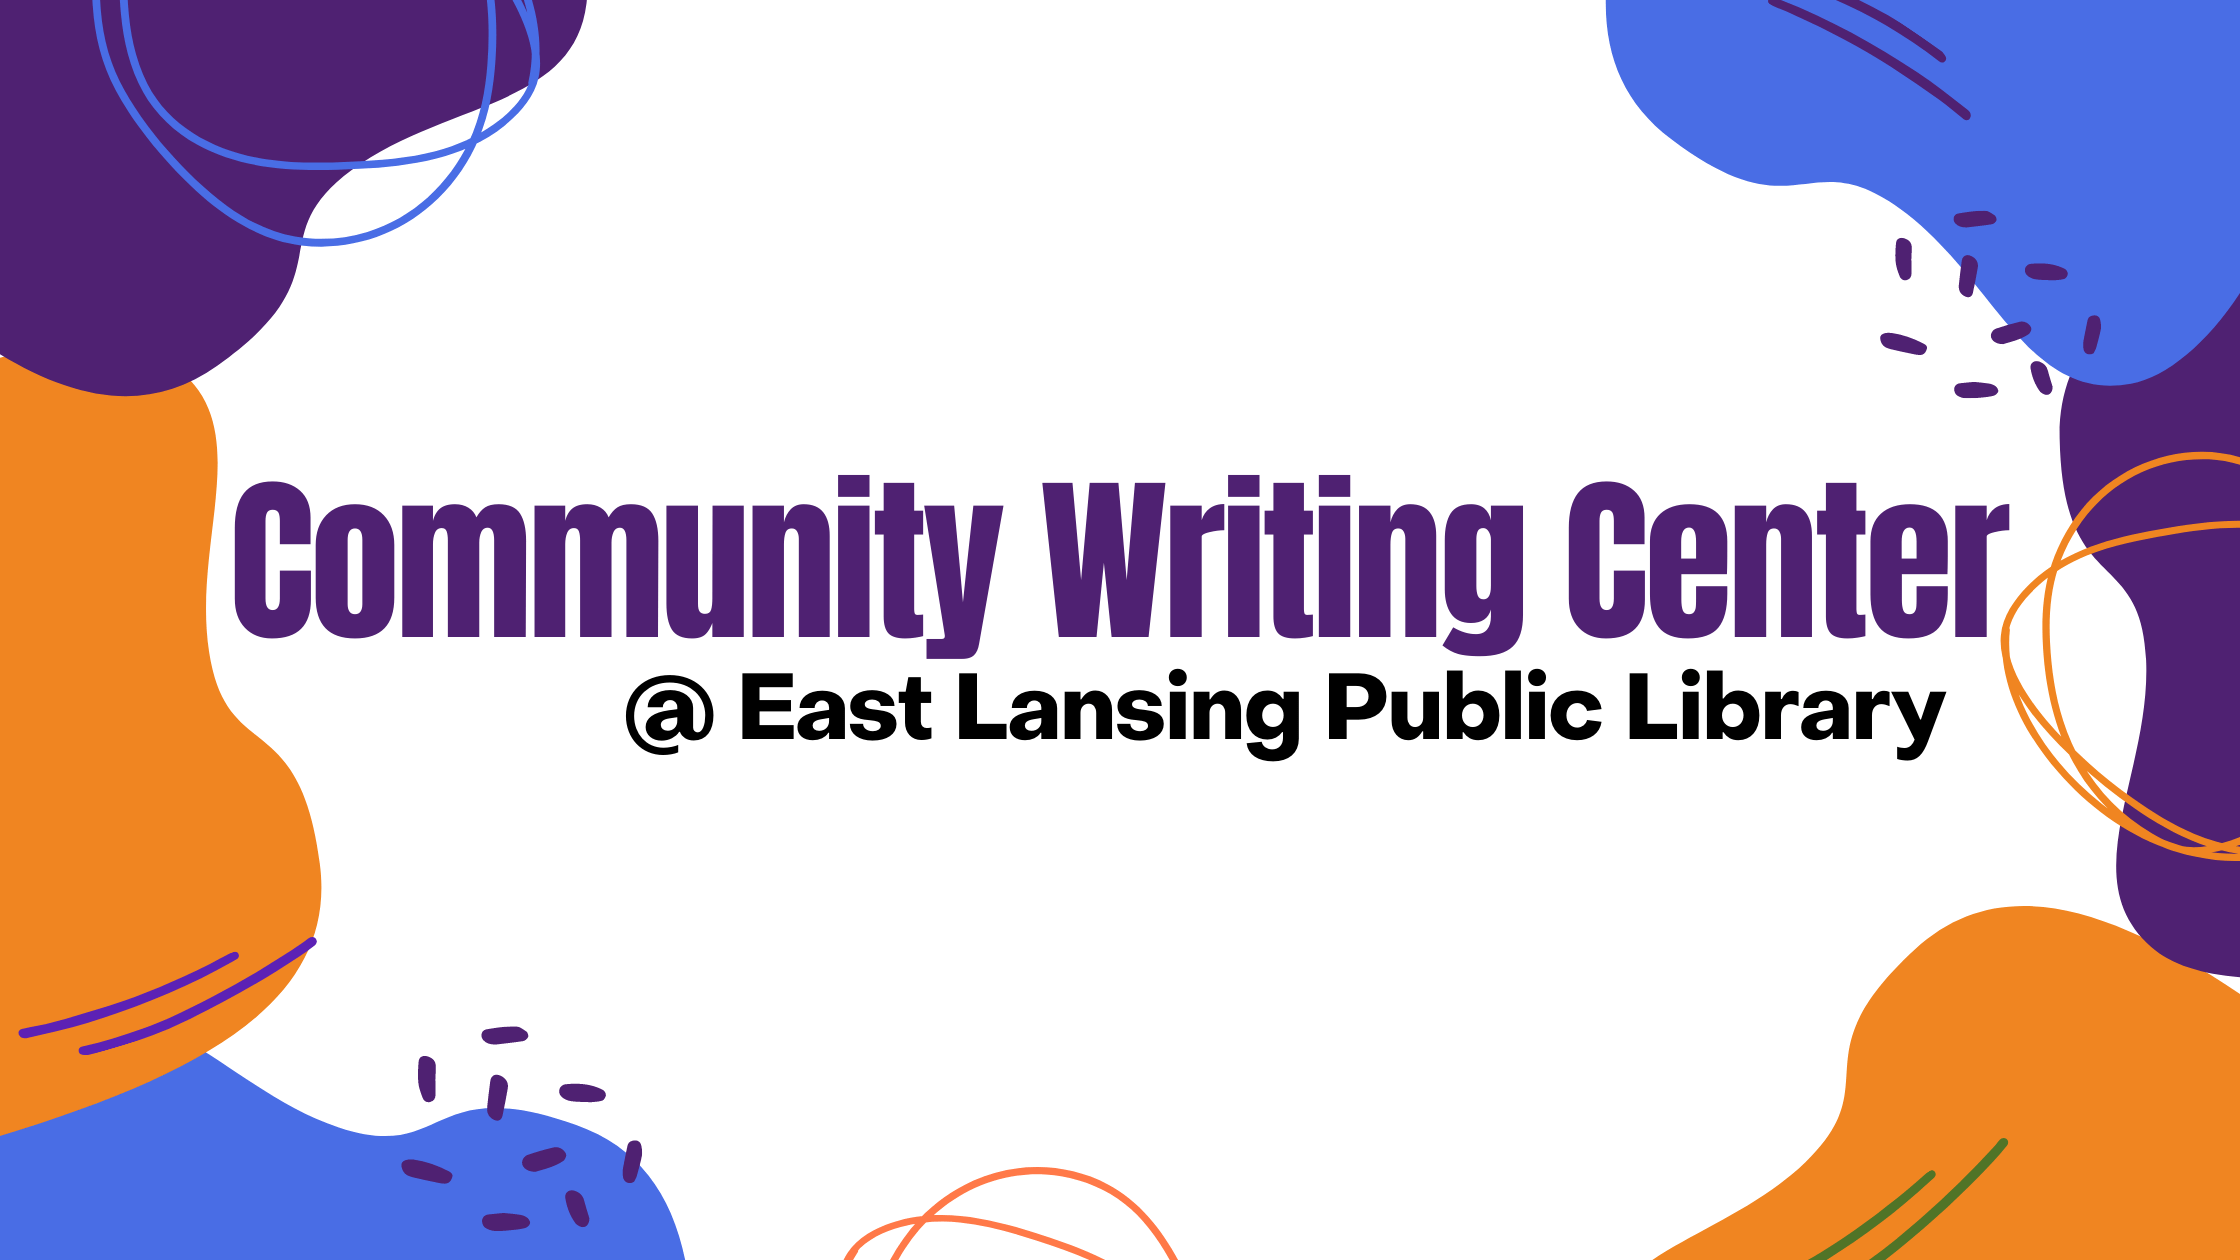 Logo for the Community Writing Center at the East Lansing Public Library